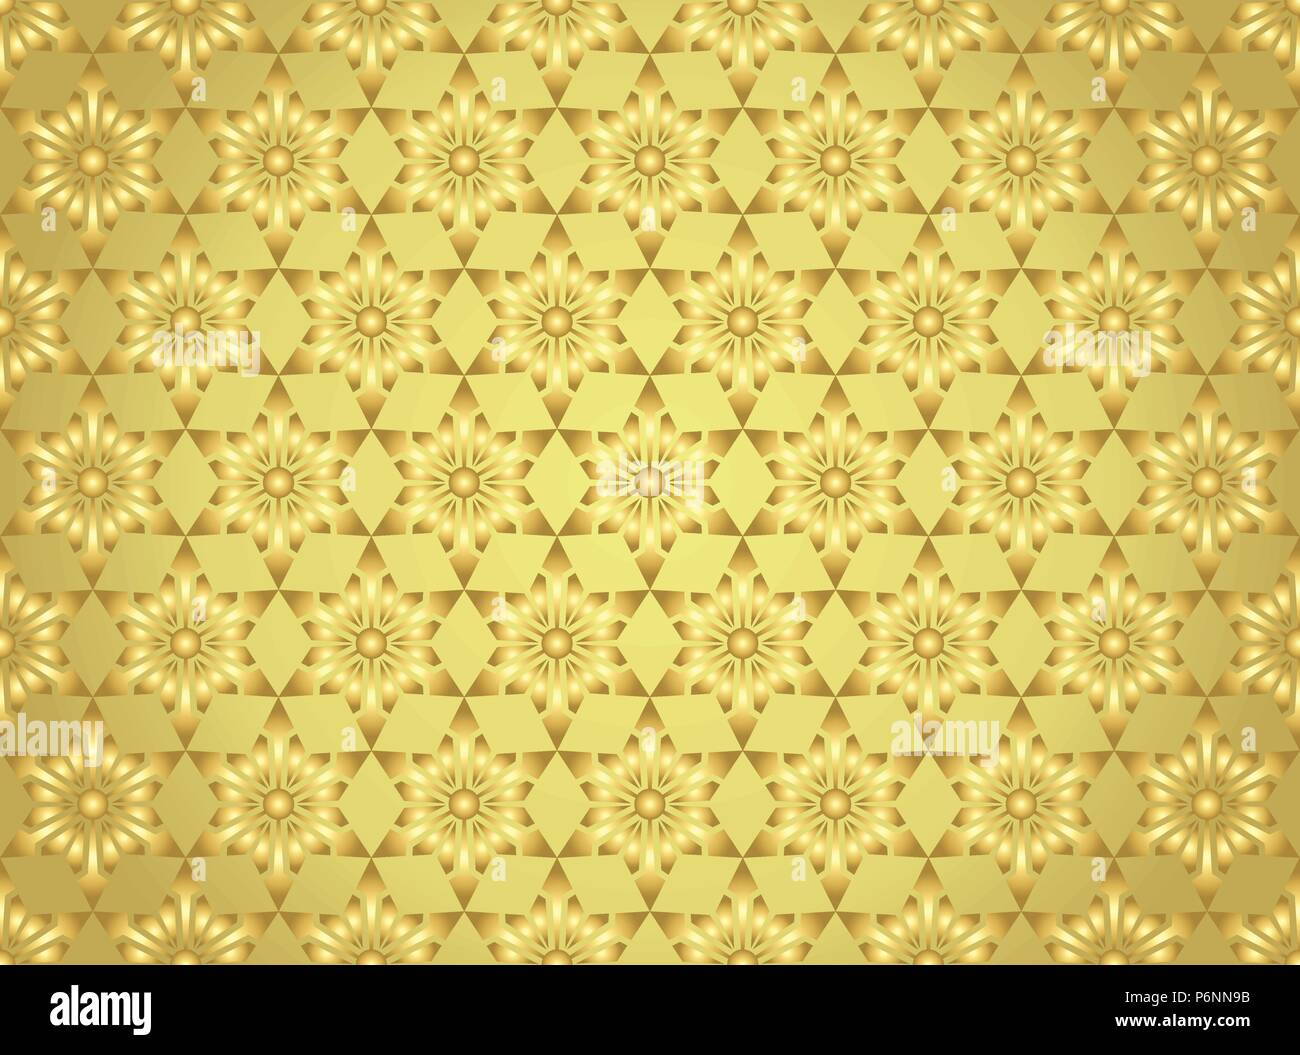 Gold modern star and circle and arrow shape seamless pattern. Fashionable flower for graphic or classic smart design - Stock Vector